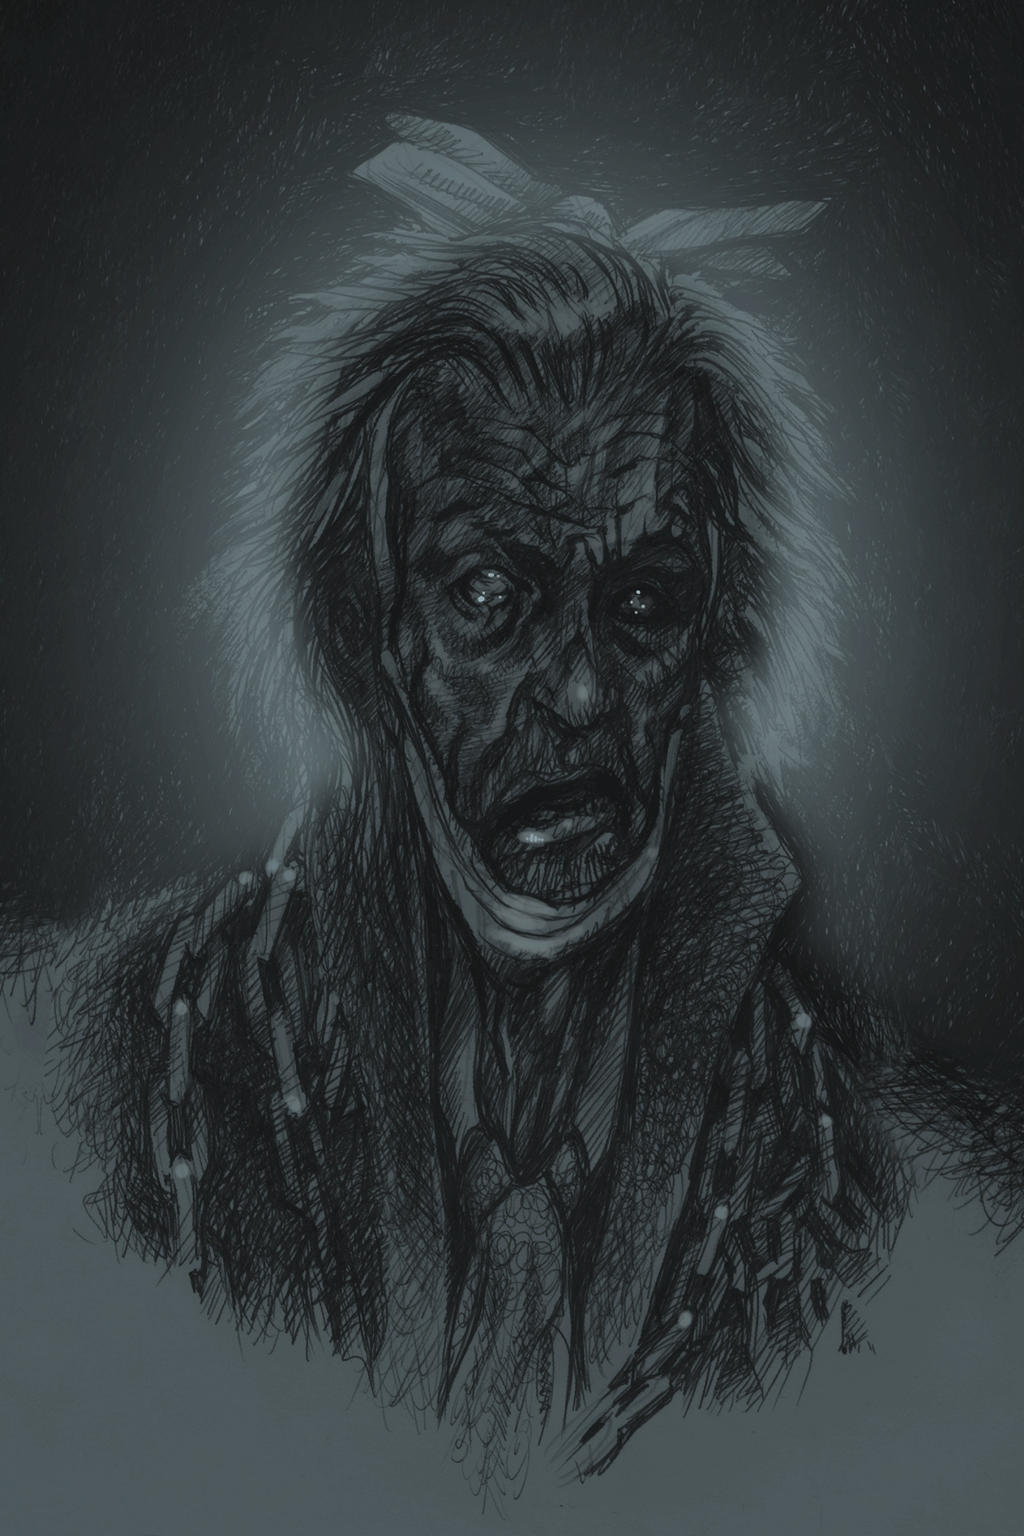 jacob marley 2 essay From anti essays, your source for research papers, essays, and term paper examples jacob marley differences and same with other things jacob marley lived an ungrateful life, he was cruel and selfish and lived with the sin of greed he thought nothing of other and only for himself.